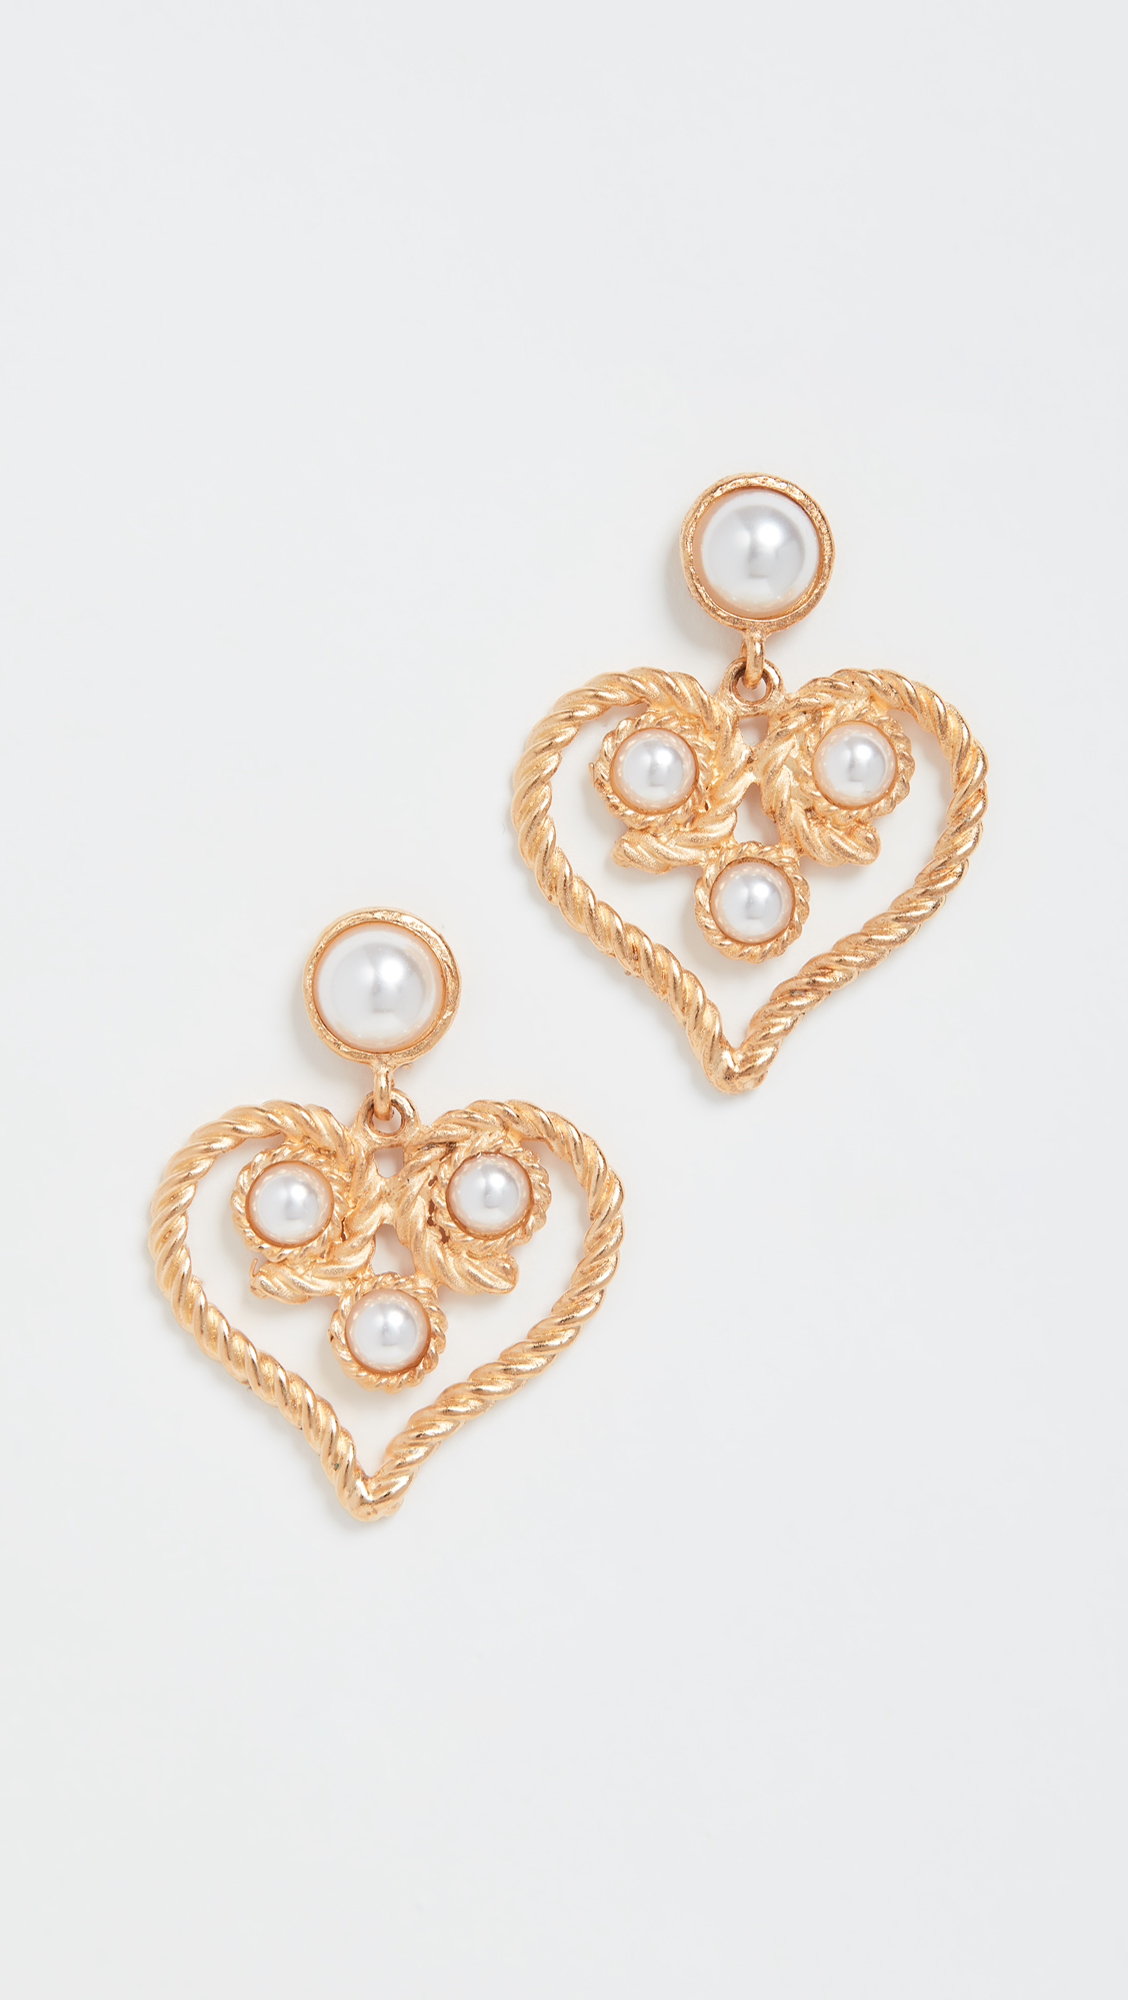 Heart Drop Earrings Gold Pearl